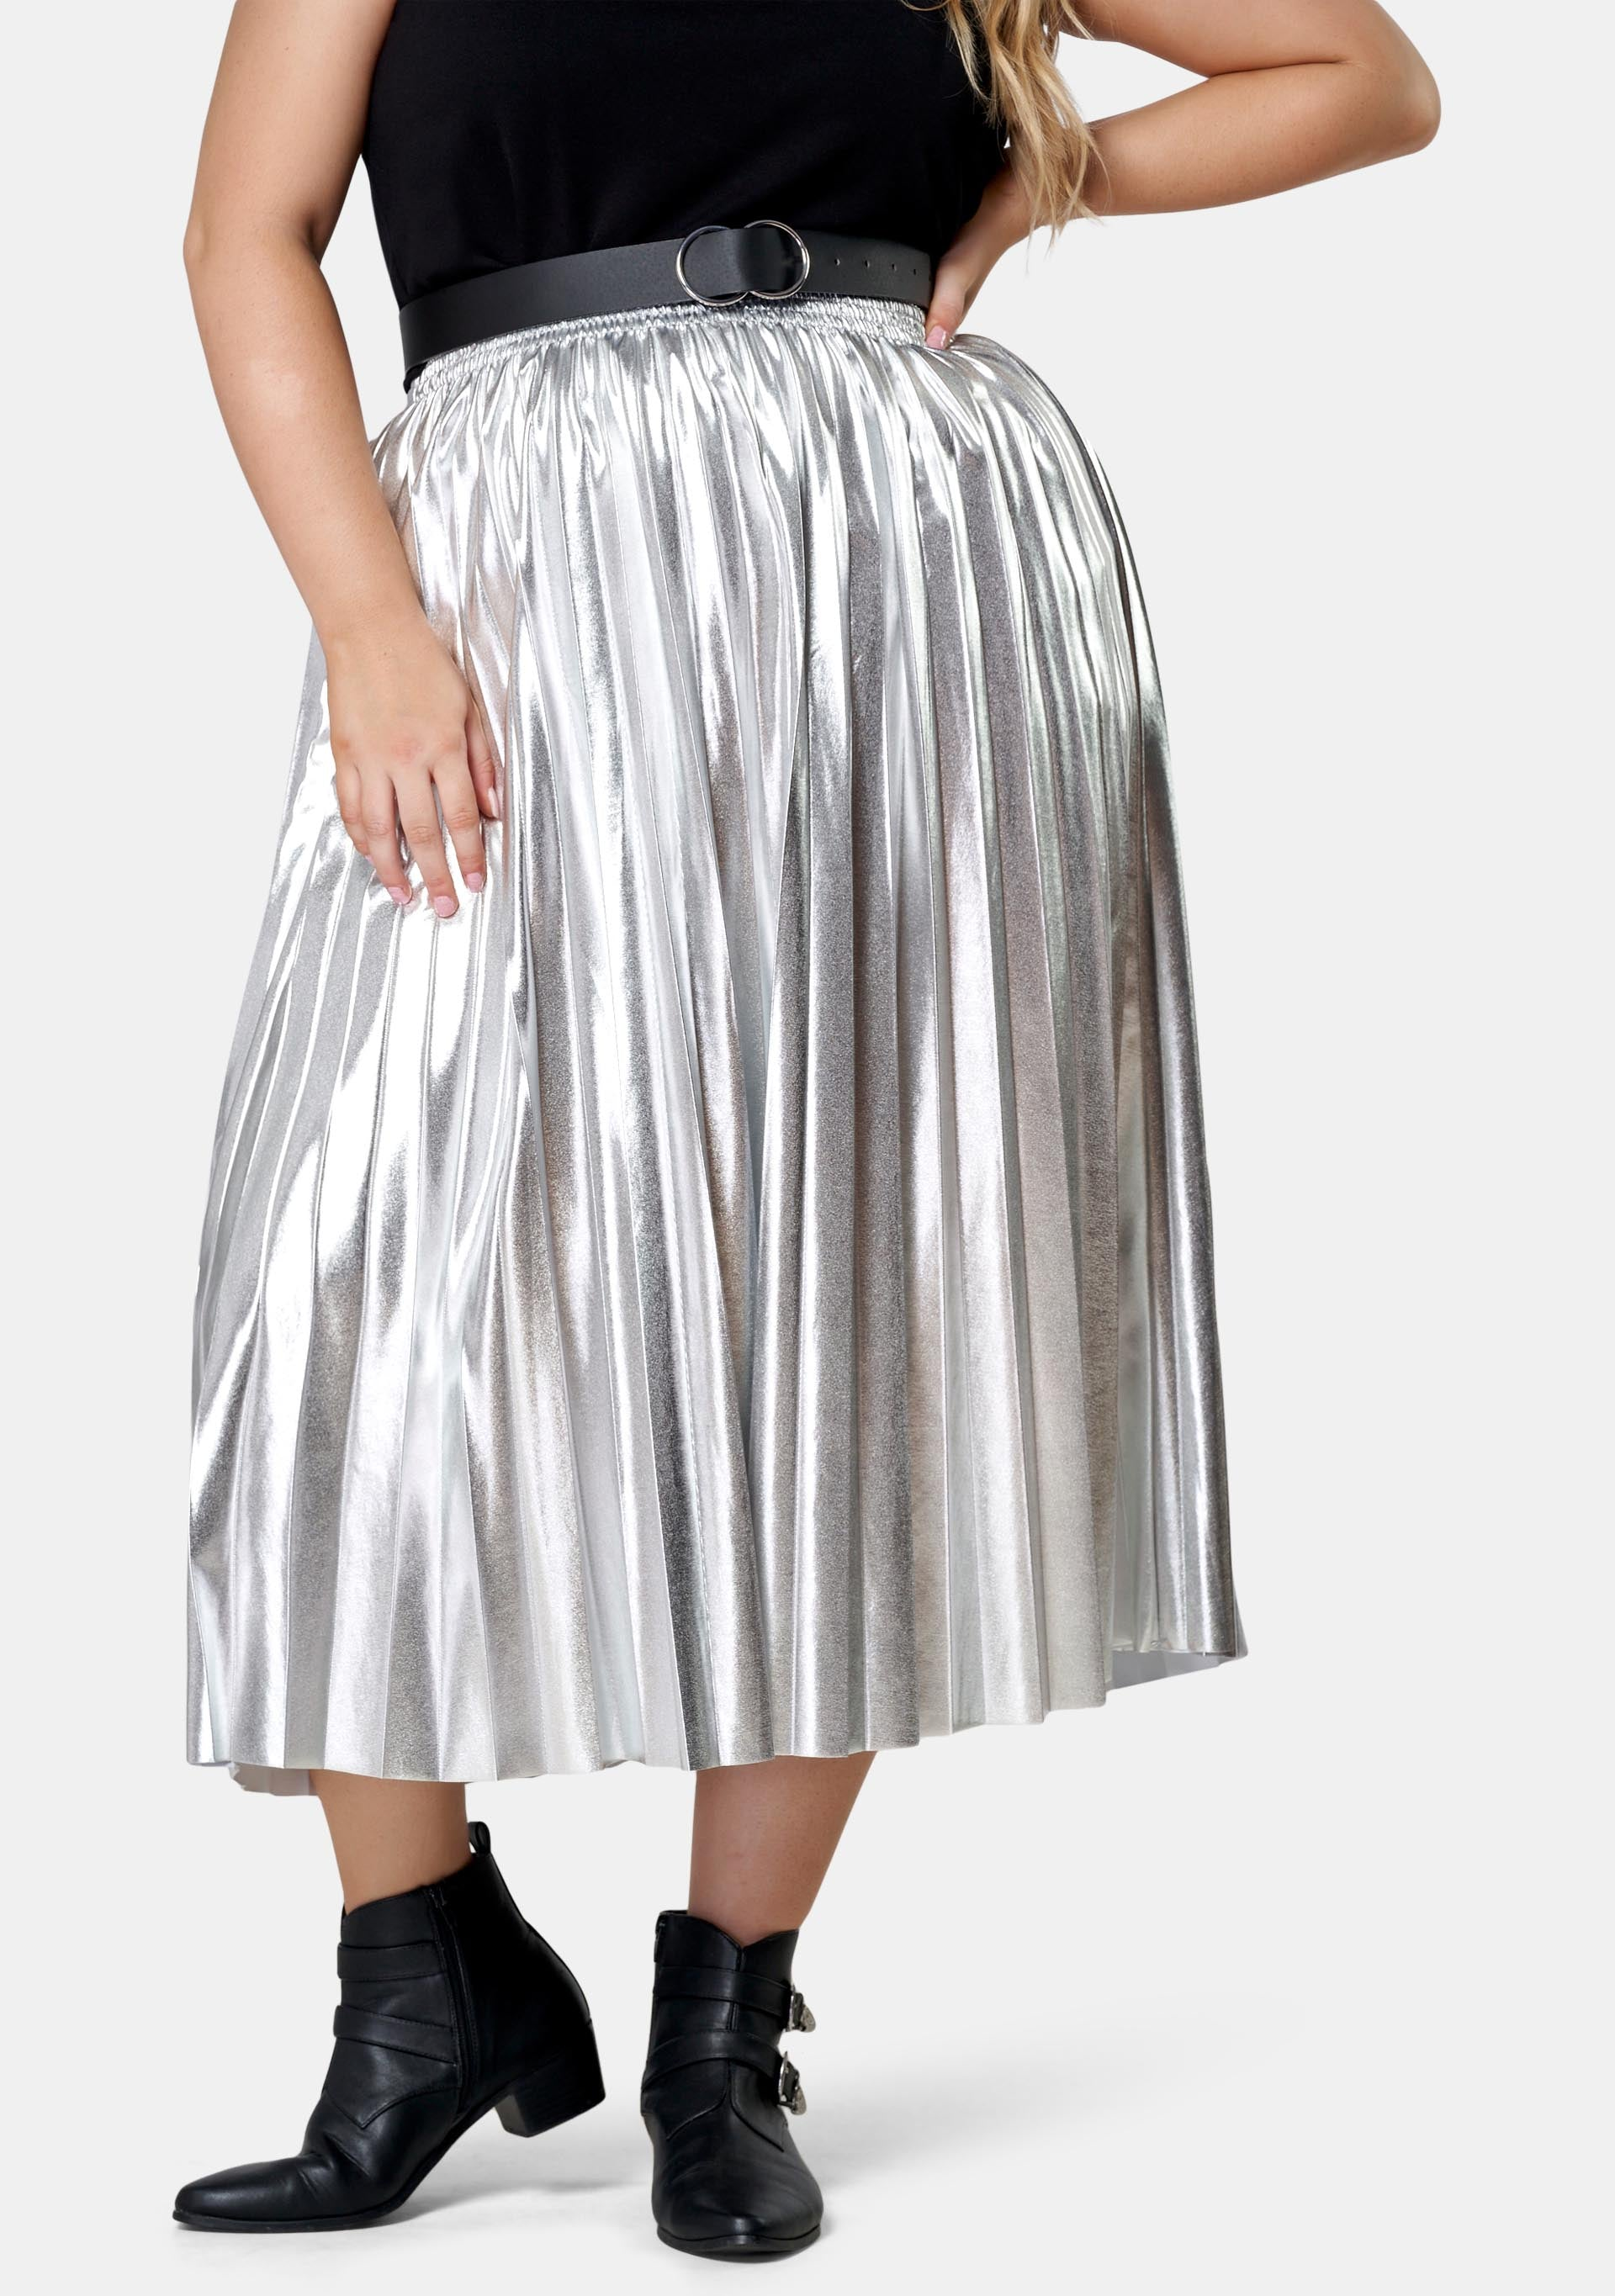 Atomic Pleated Midi Skirt